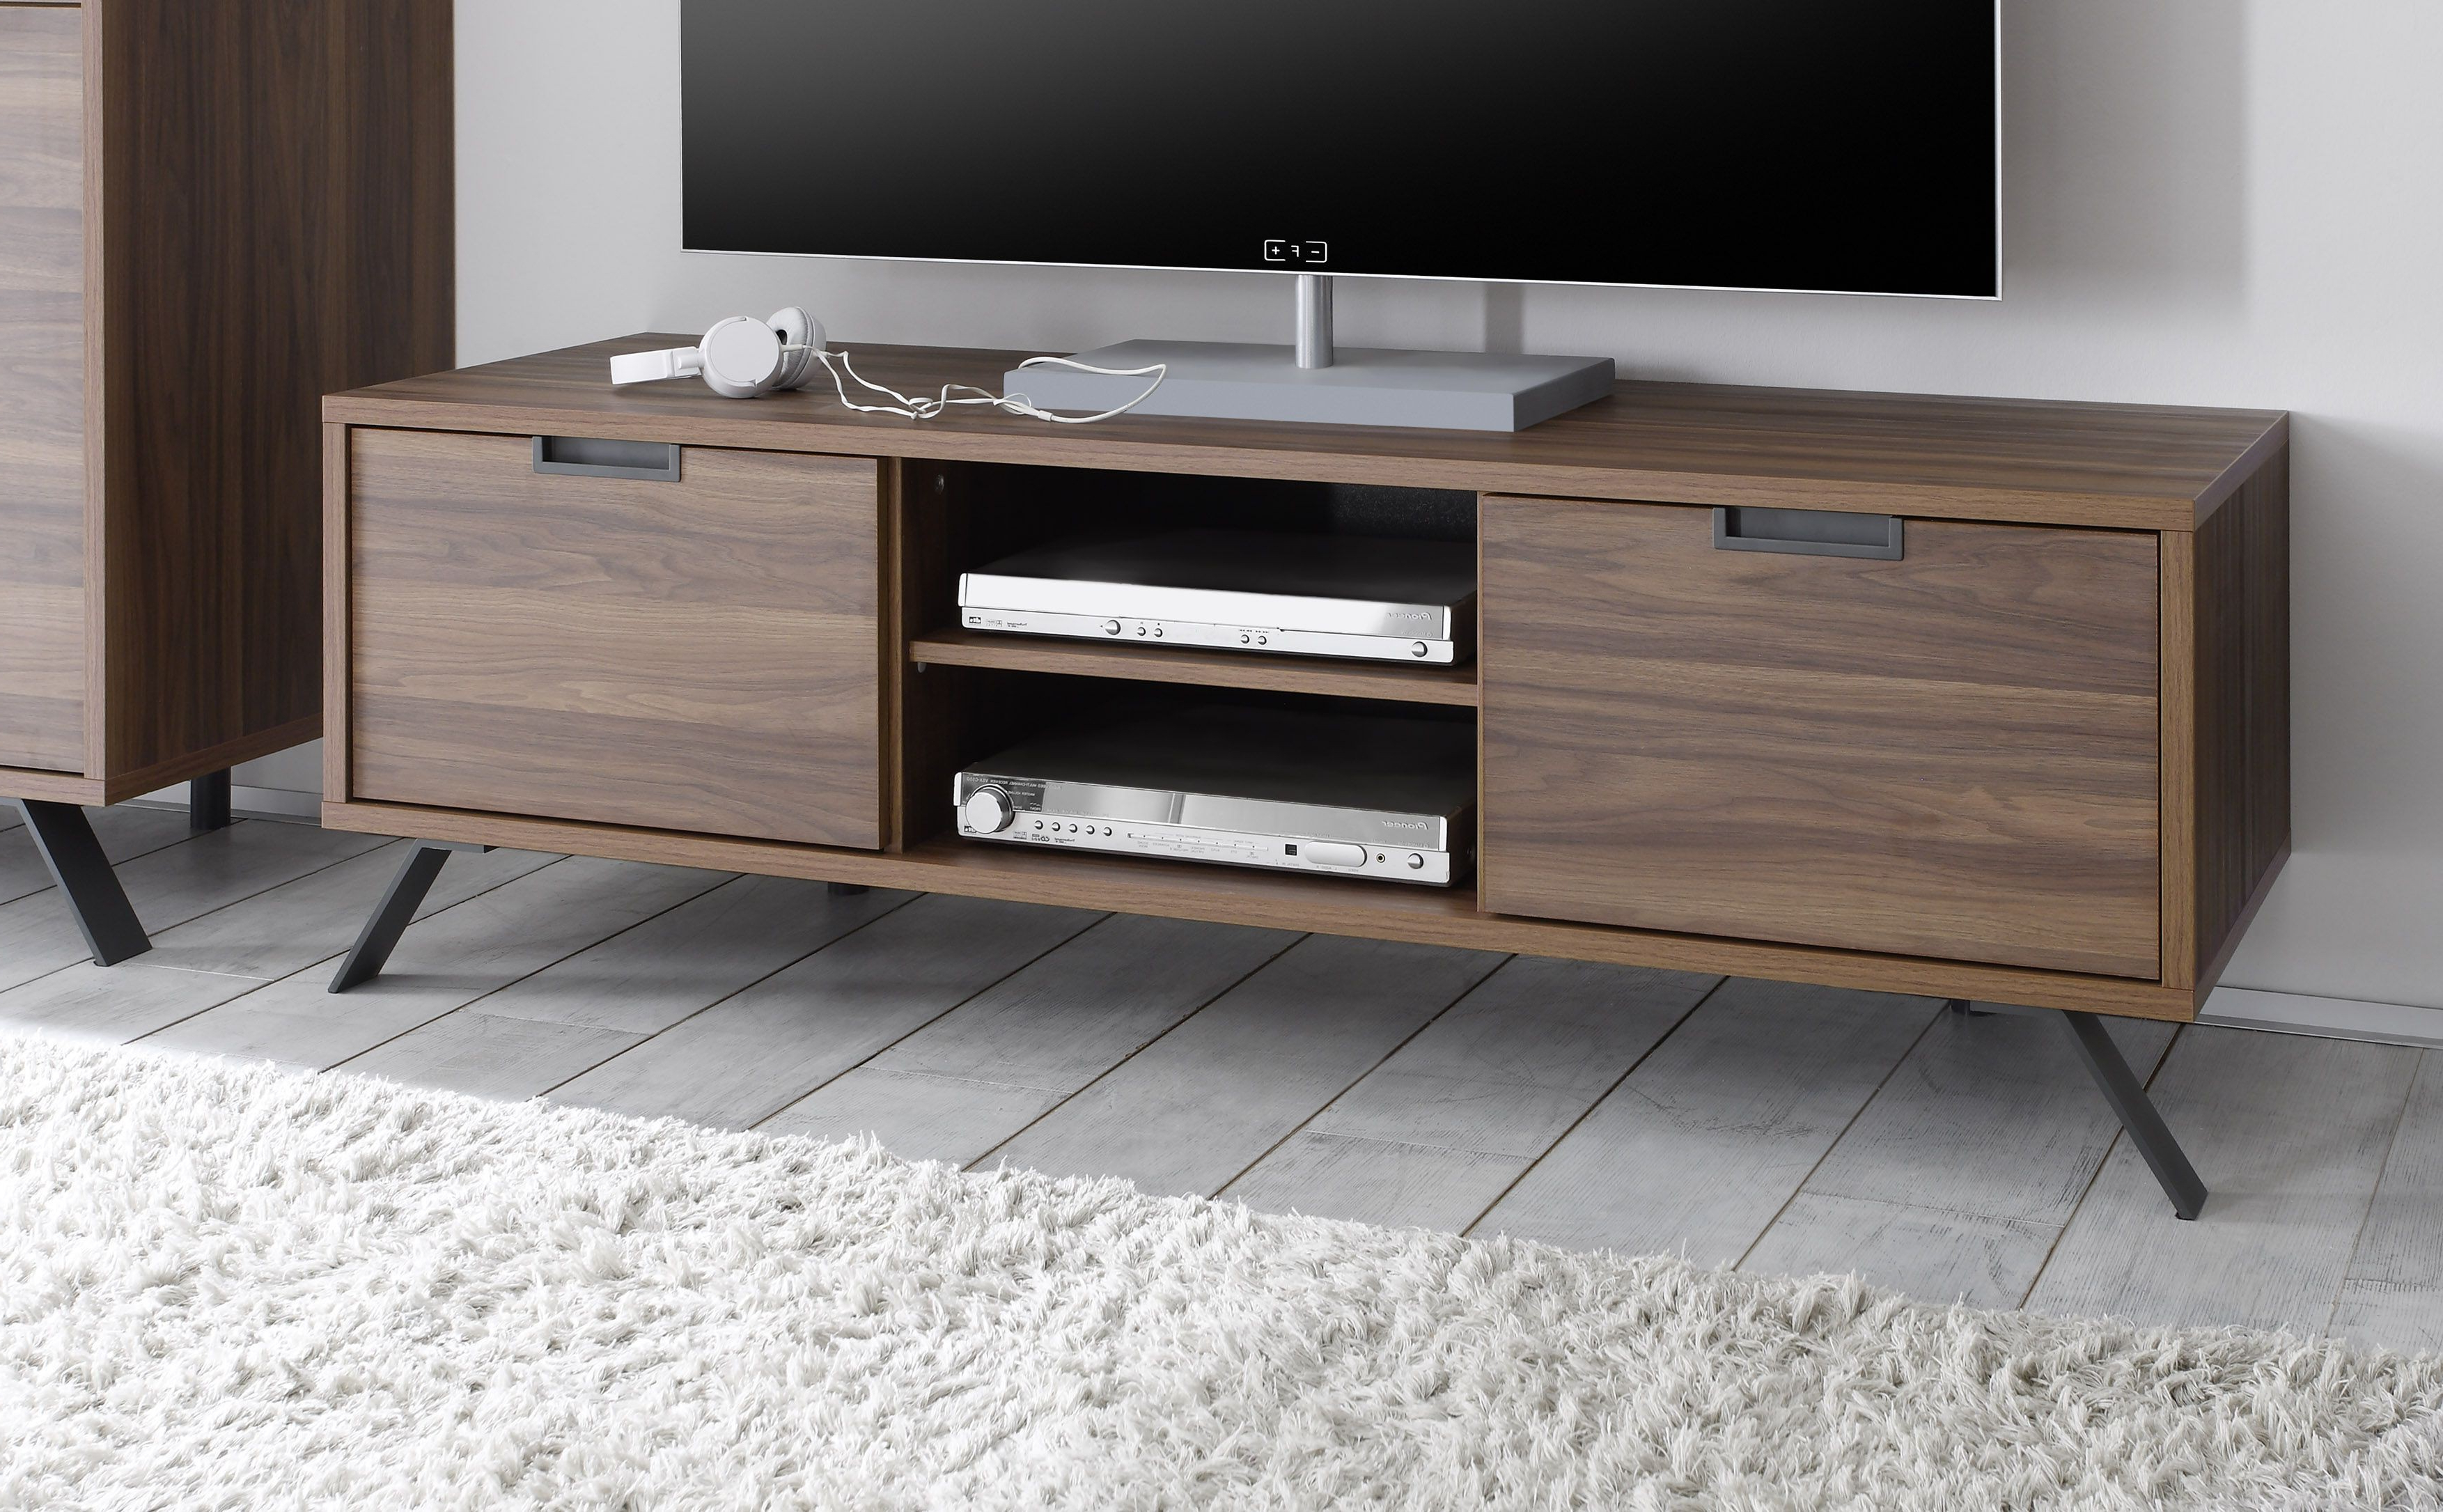 Favorite Walnut Tv Stands With Regard To Why Should One Buy Walnut Tv Stand? – Furnish Ideas (Gallery 16 of 20)